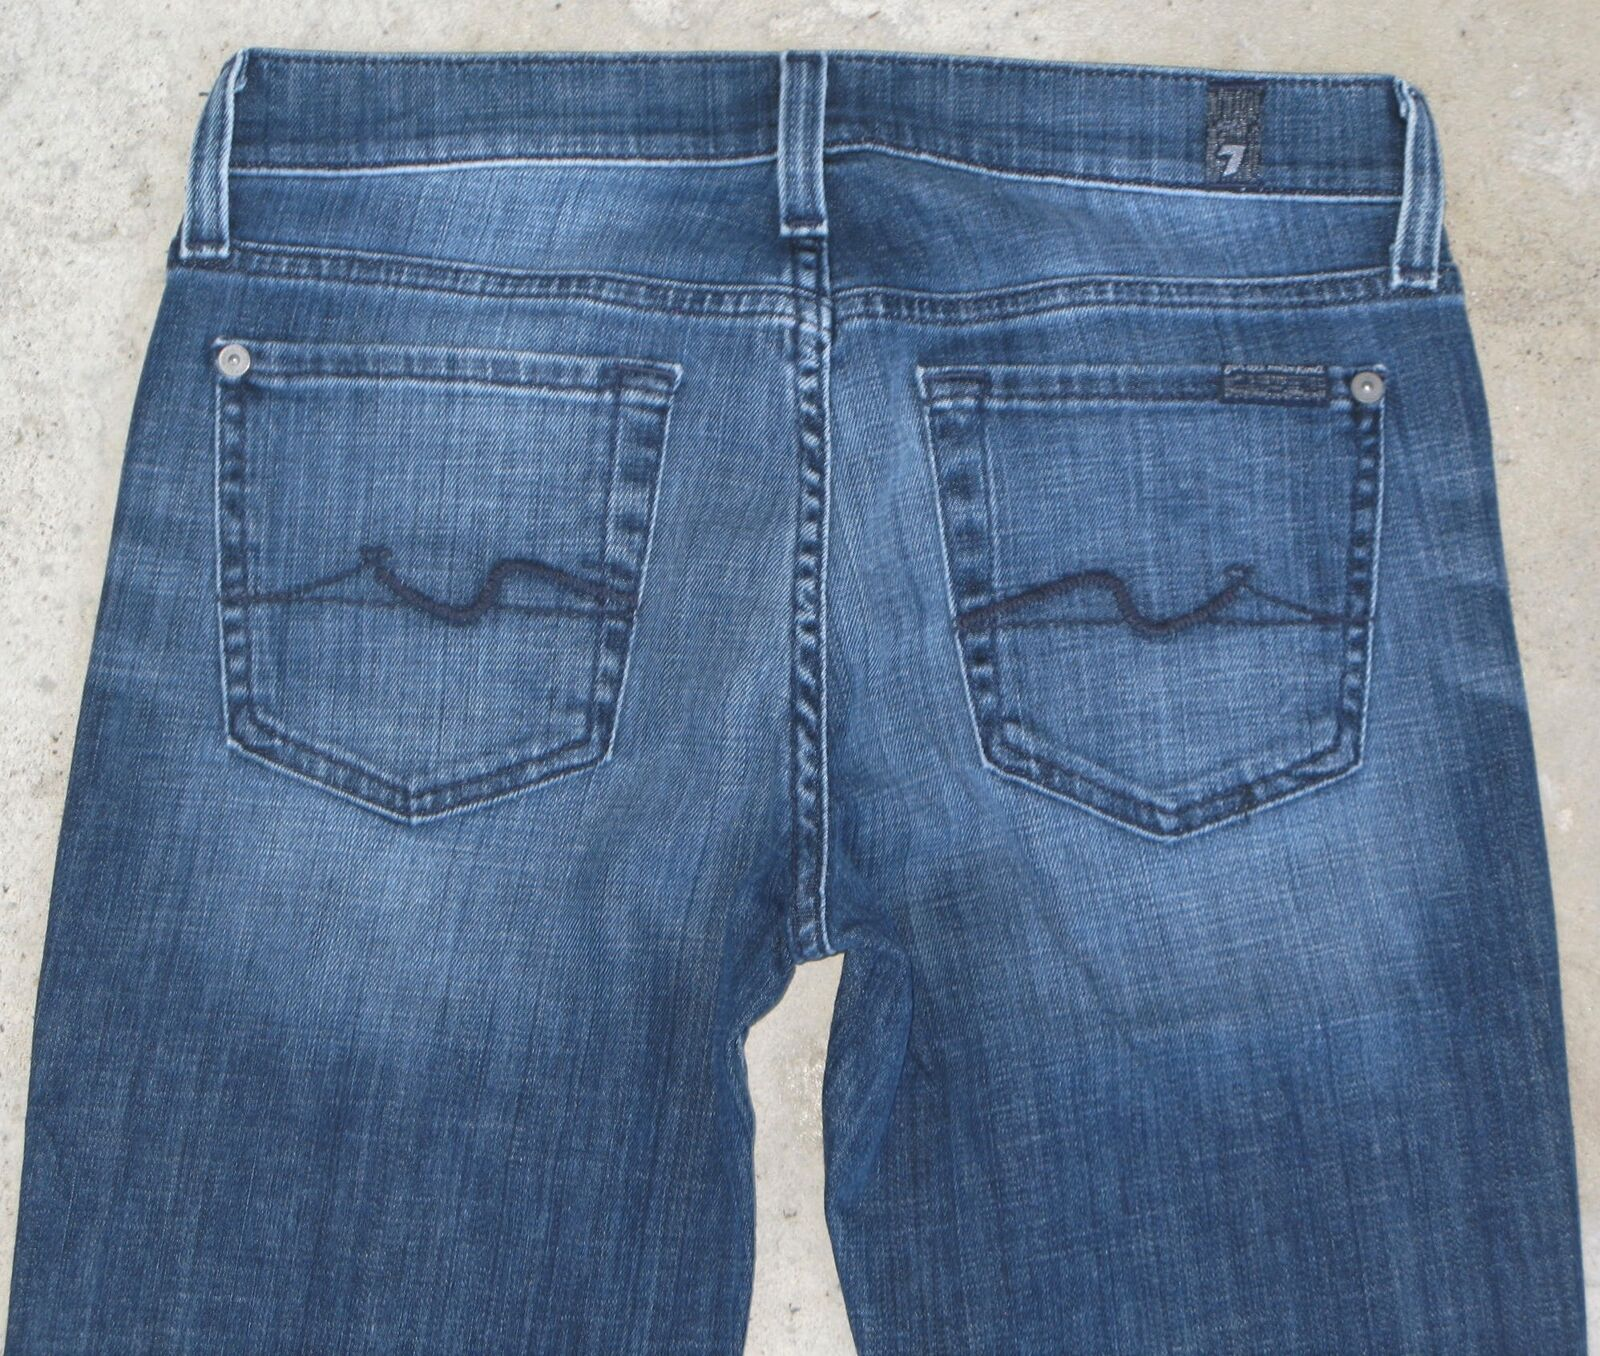 7 for all Mankind Womens Bootcut Jeans Sz 25 Distresssed Wash w Stretch